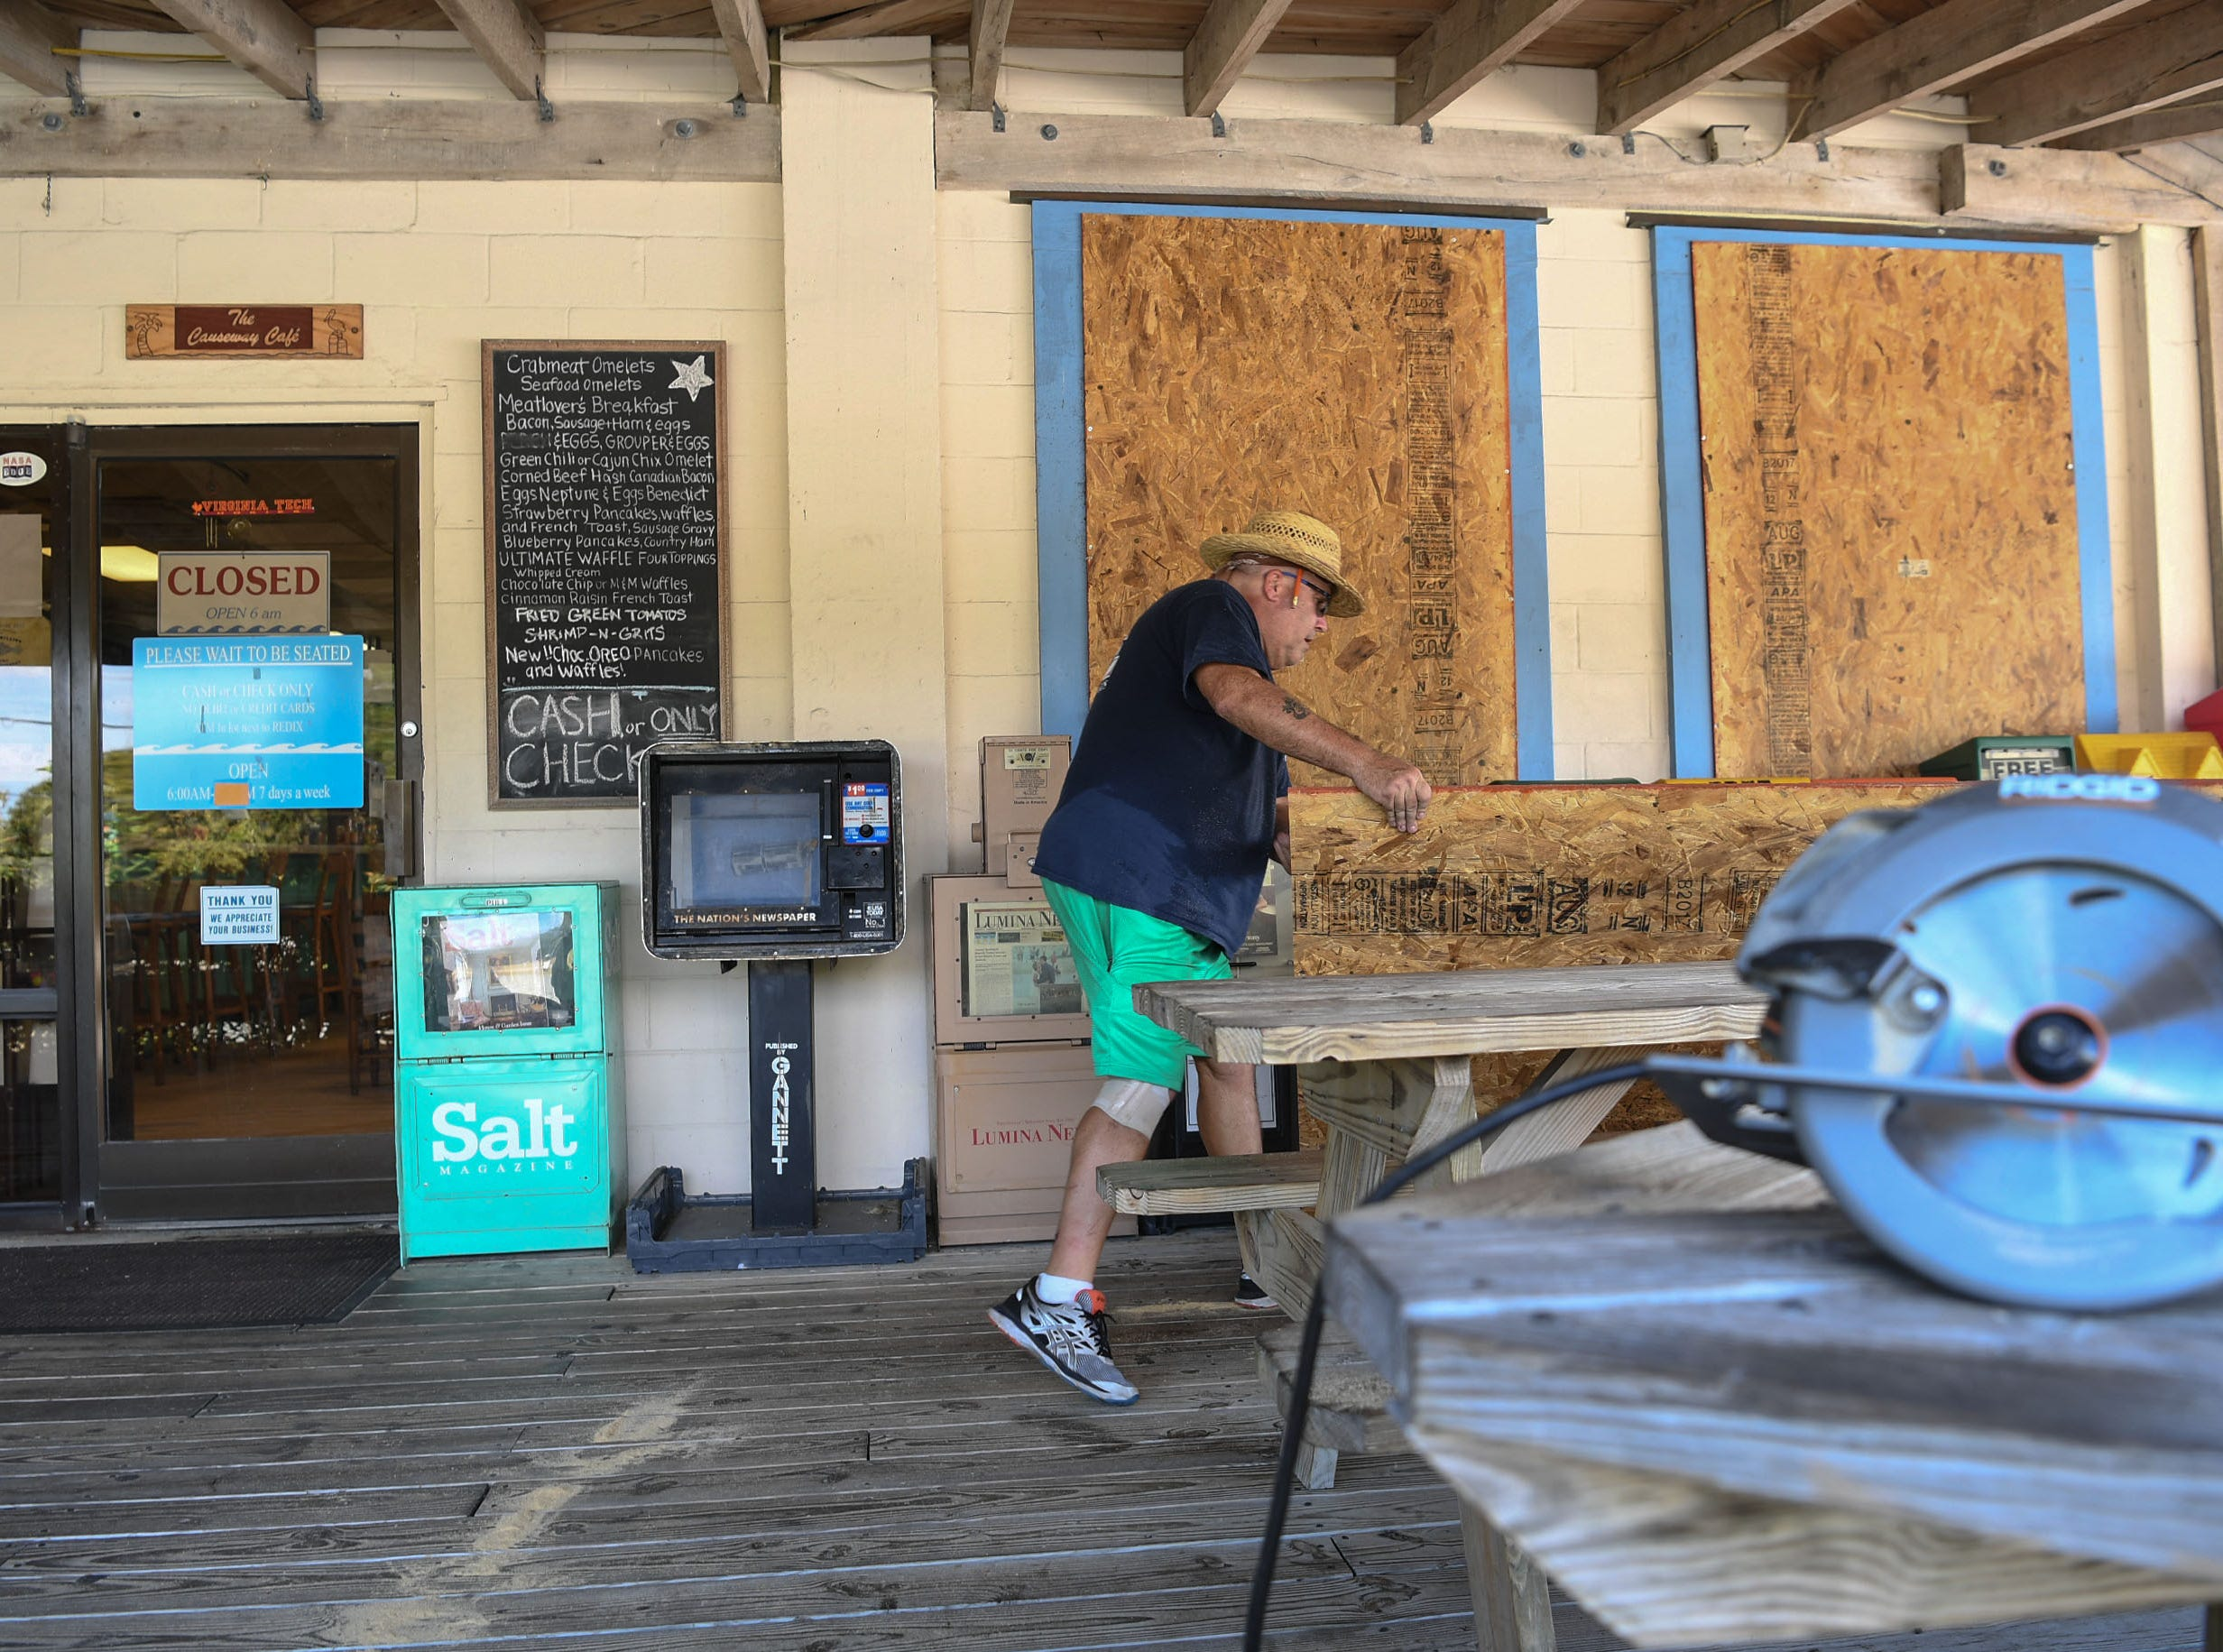 Jon Wright, 63, of Wilmington, North Carolina, covers windows at the Causeway Cafe in Wilmington, North Carolina on Tuesday, September 11, 2018. Hurricane Florence is expected to arrive in Wilmington, North Carolina late Thursday night through Friday morning. (Ken Ruinard / Greenville News / Gannett USA Today Network / 2018 )